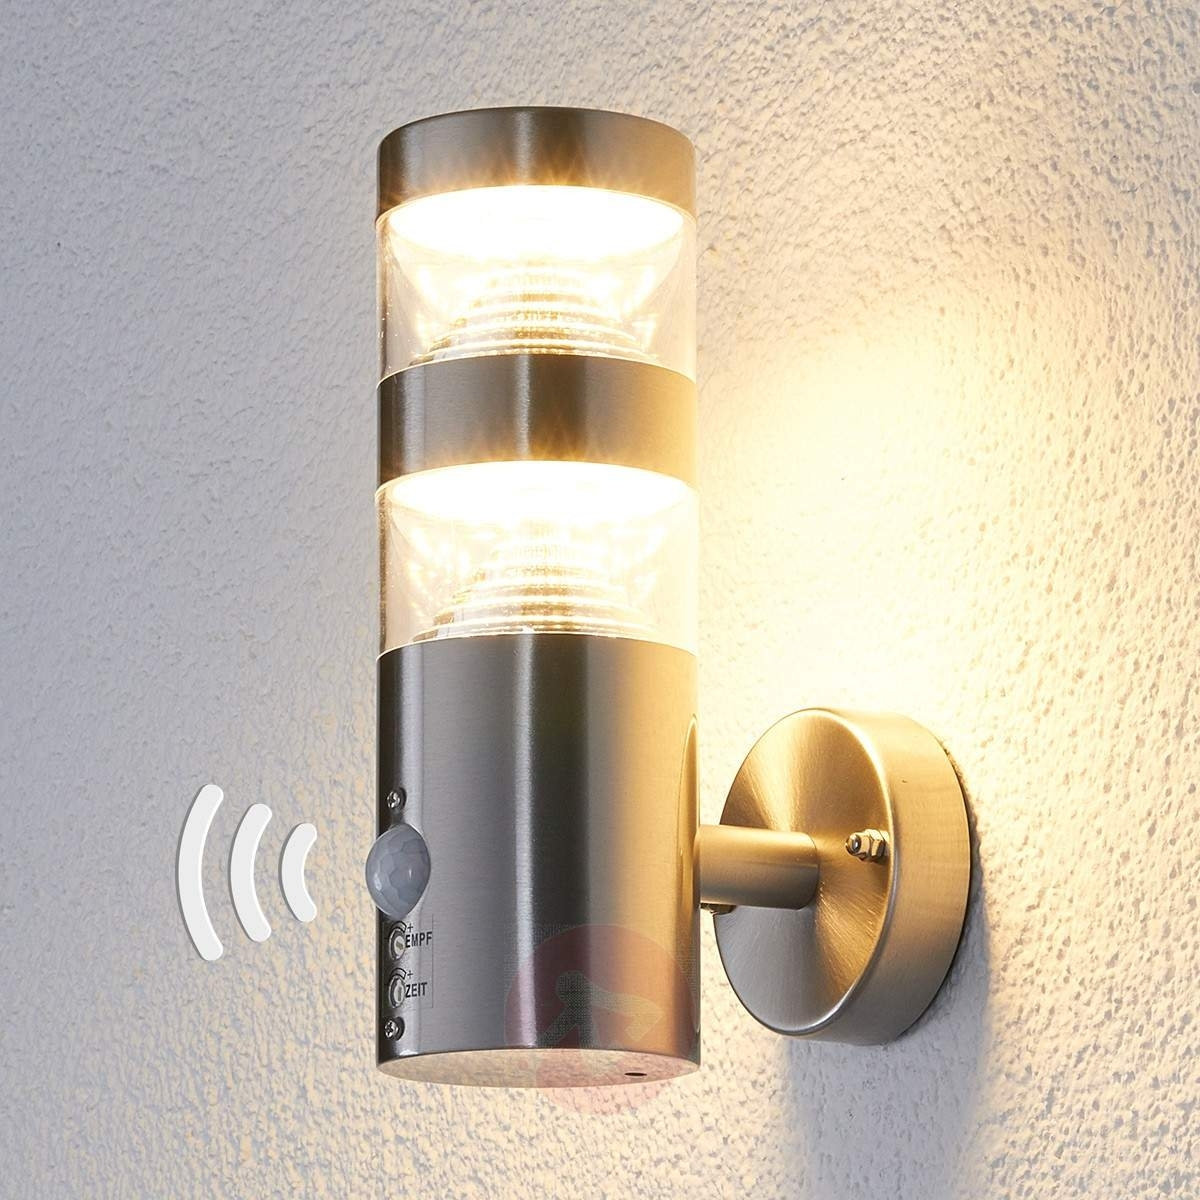 Led Outdoor Wall Light Lanea With Motion Sensor | Lights.co (#8 of 15)